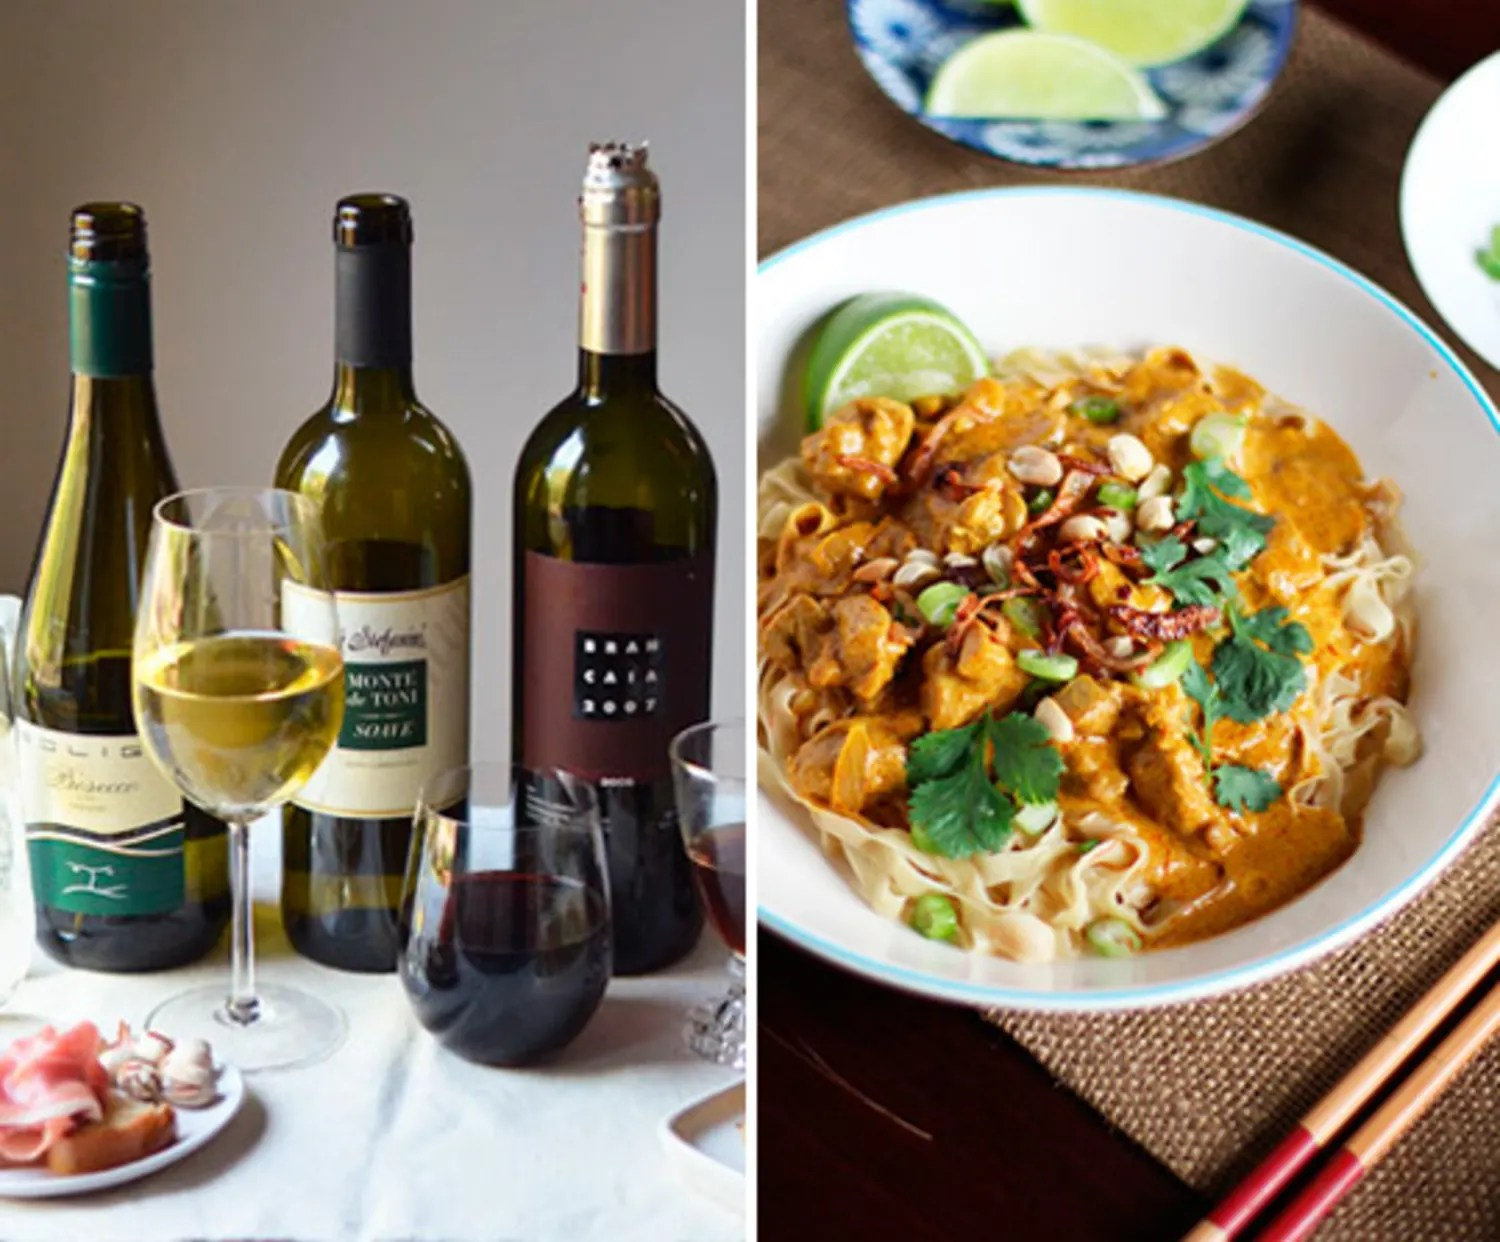 Cuisines With Spicy Food 3 Rules For Pairing Wines With Spicy Foods Kitchn